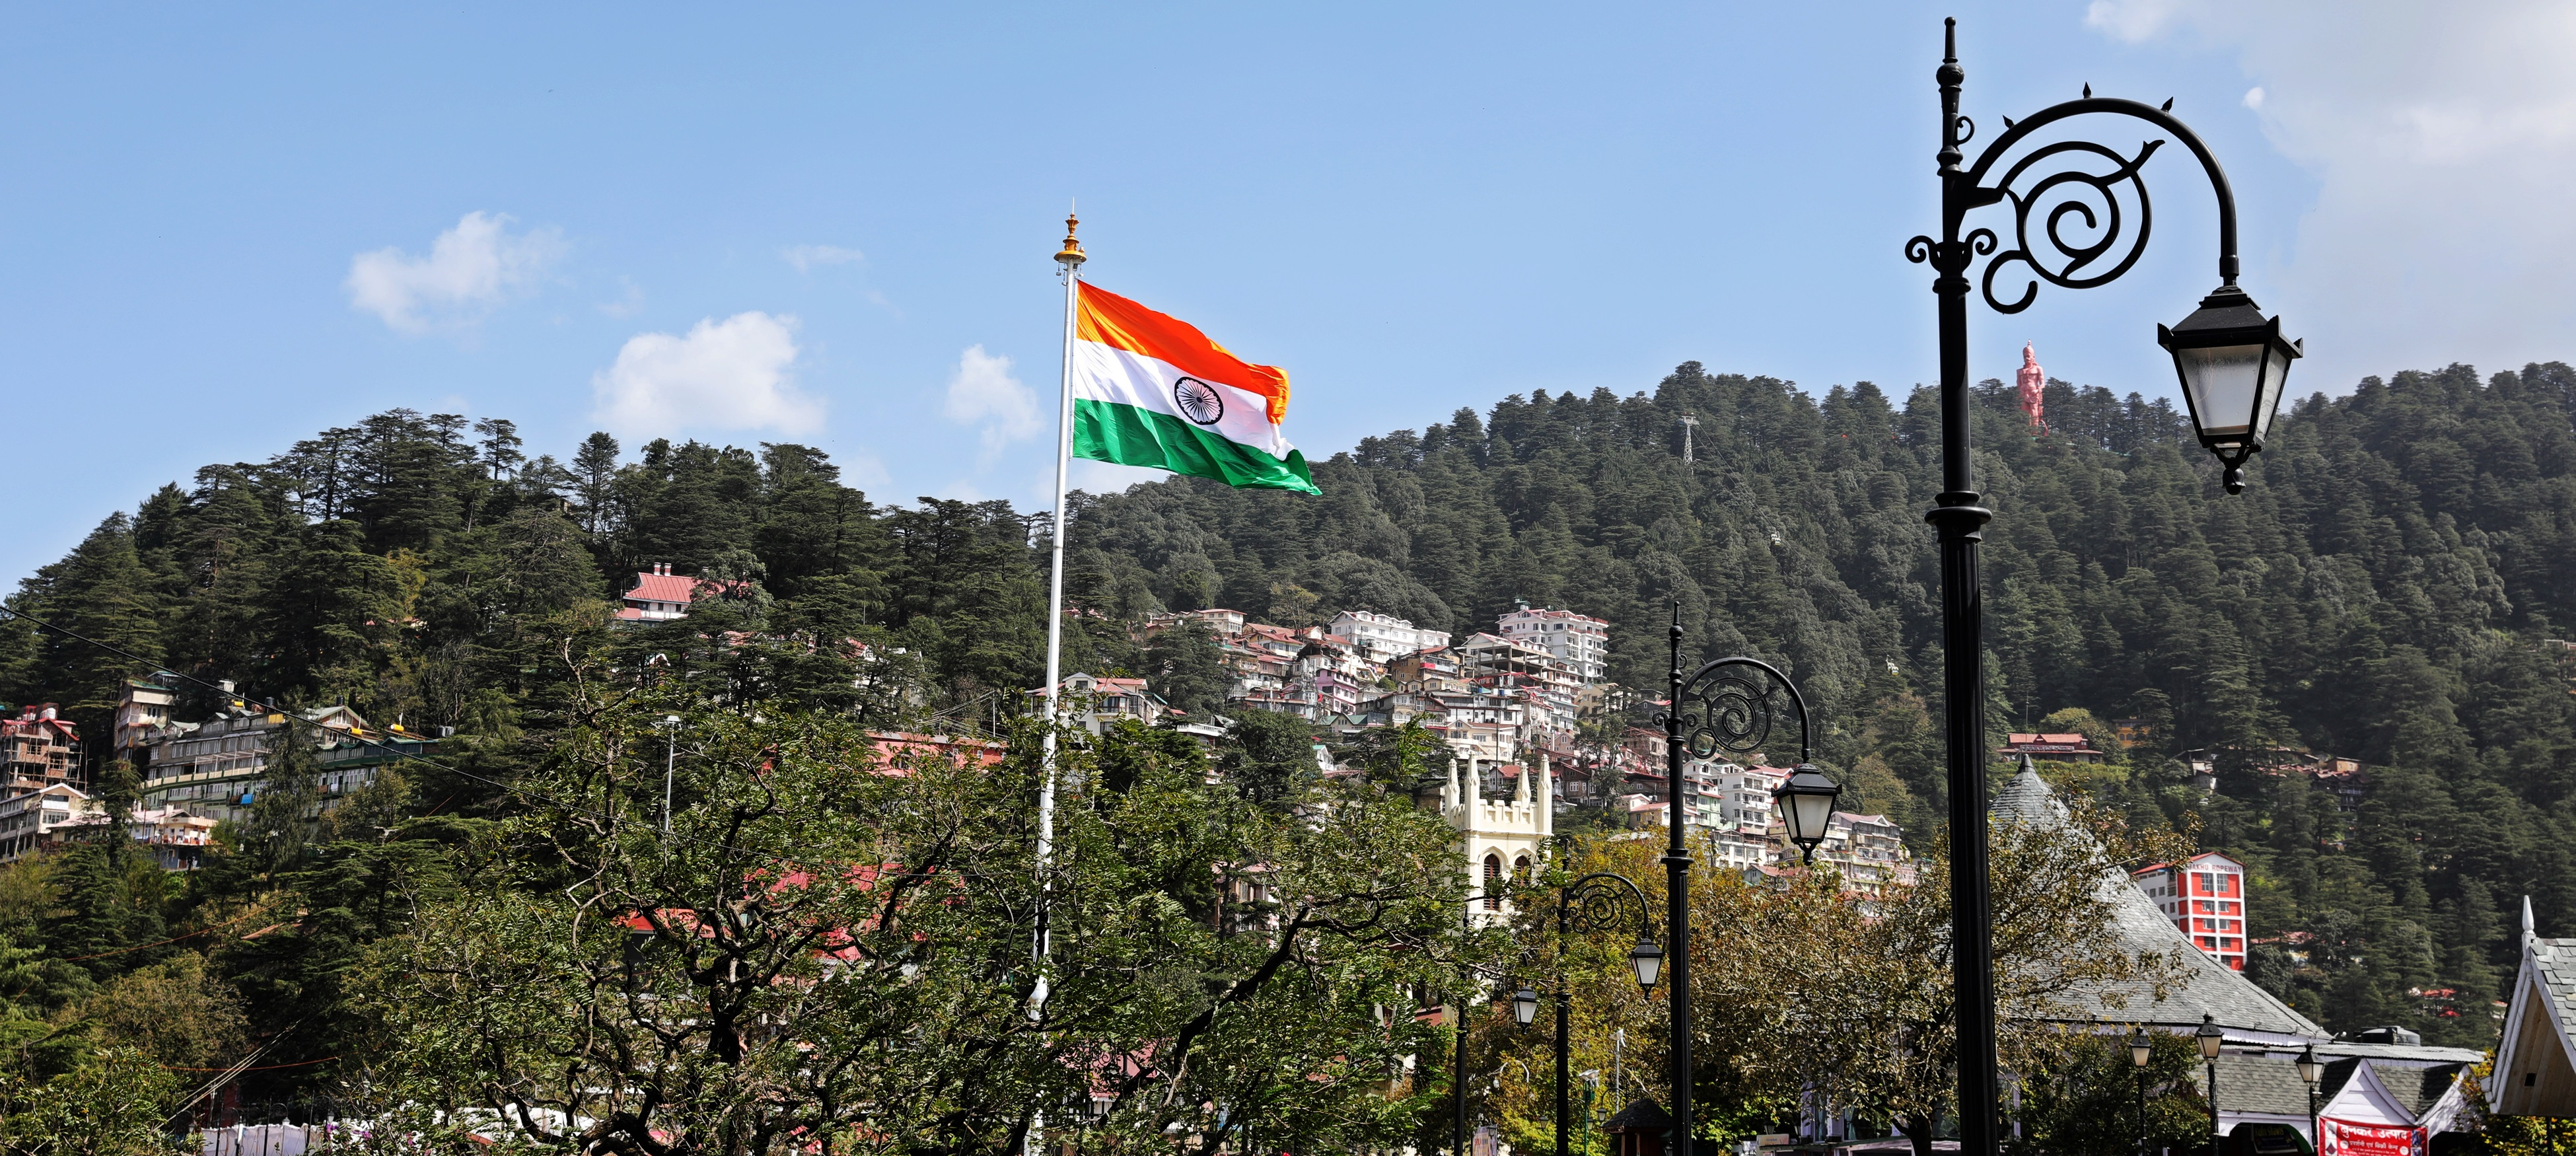 Indian flag, with Hanuman on the hill, Shimla